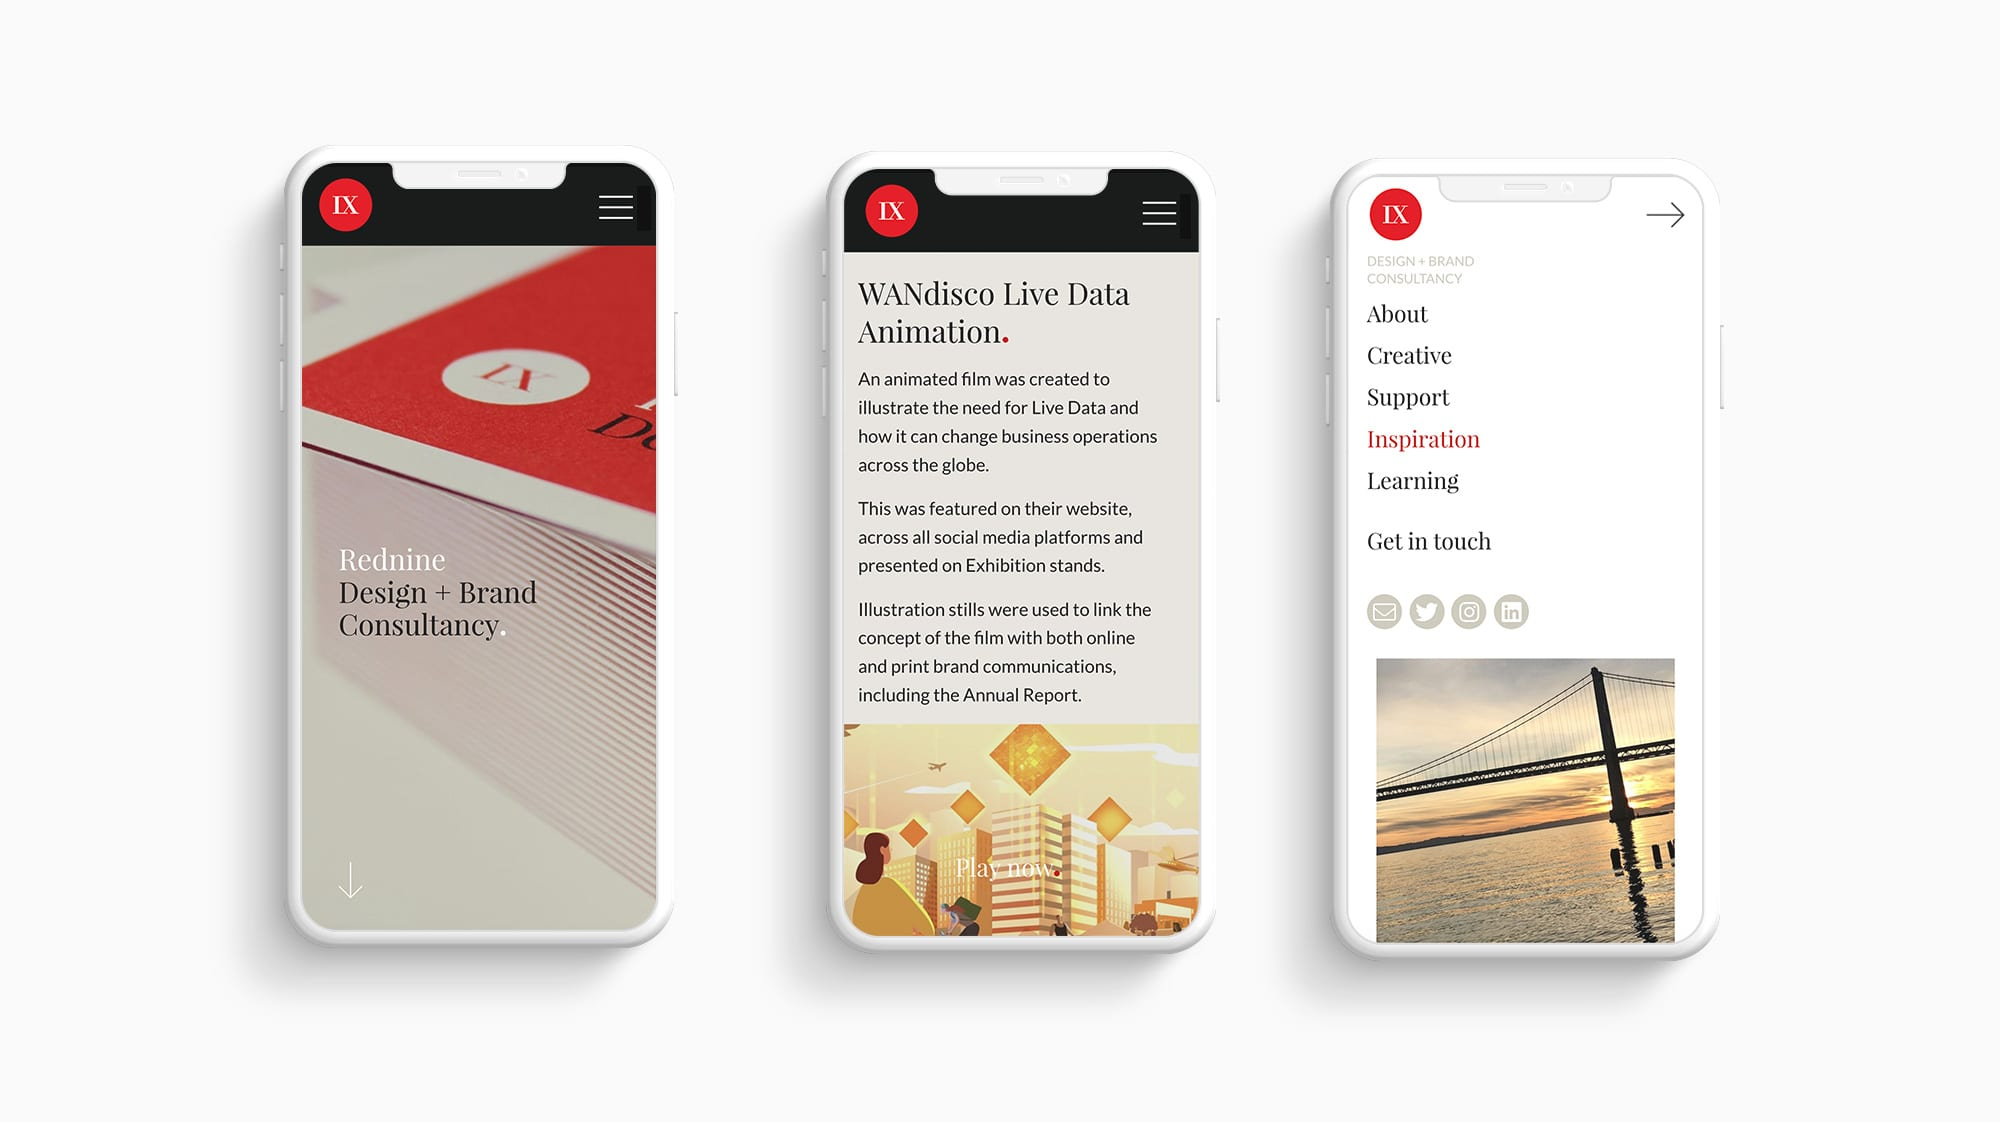 Rednine mobile website designs